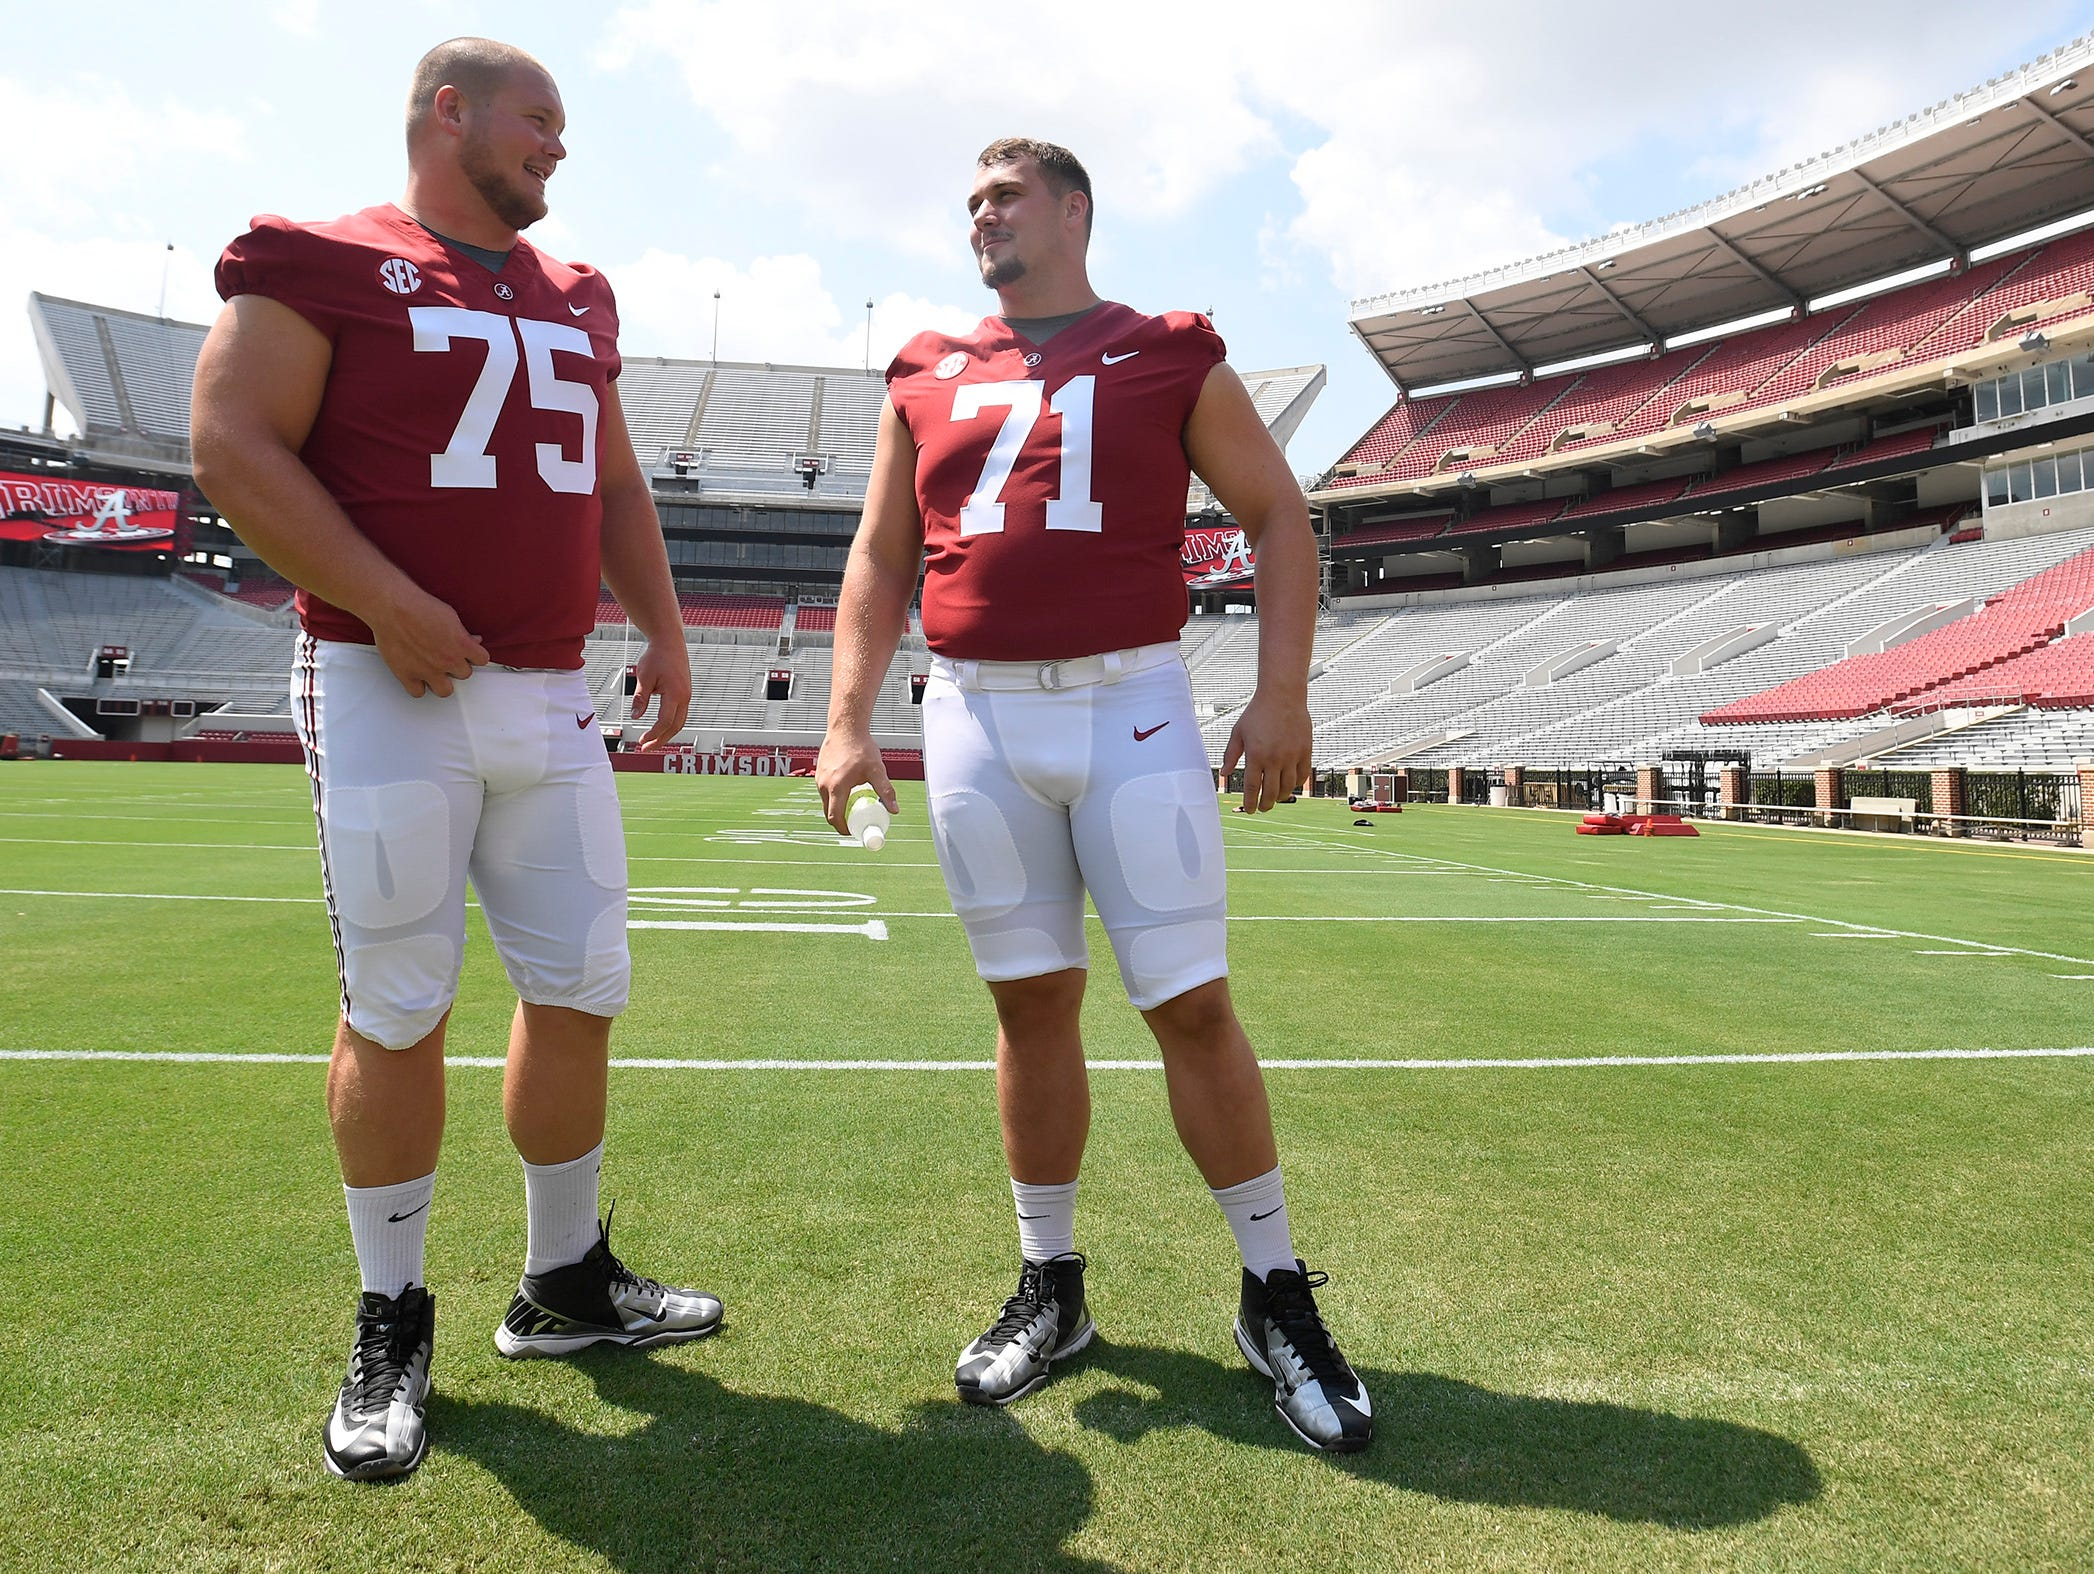 Alabama offensive lineman Bradley Bozeman (75) and offensive lineman Ross Pierschbacher (71) before fan day in Tuscaloosa, Ala. on Saturday August 5, 2017.